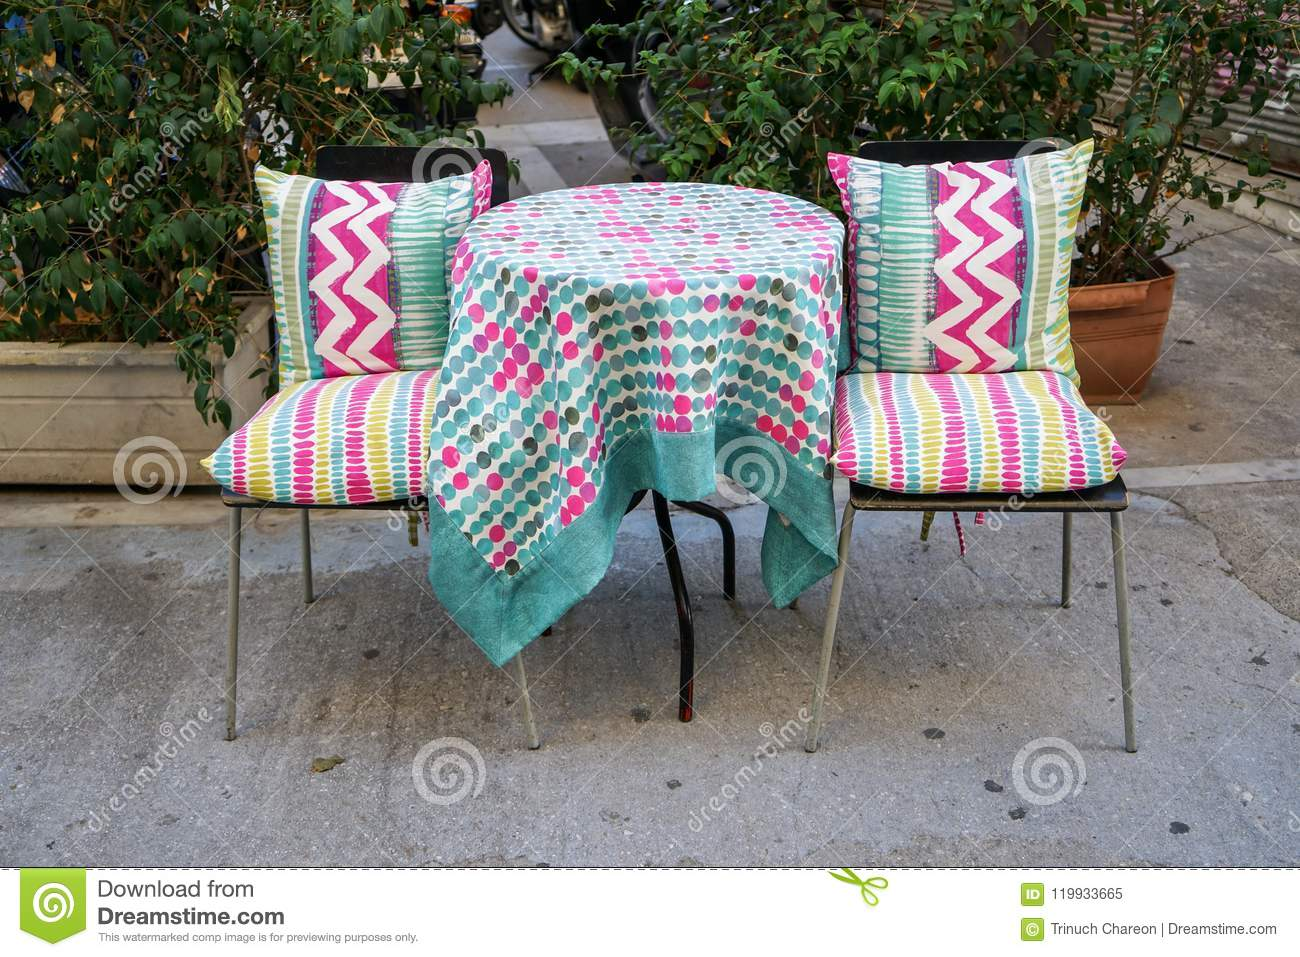 Outdoor furniture round table and chairs with colorful pattern fabric table cloth on concrete floor